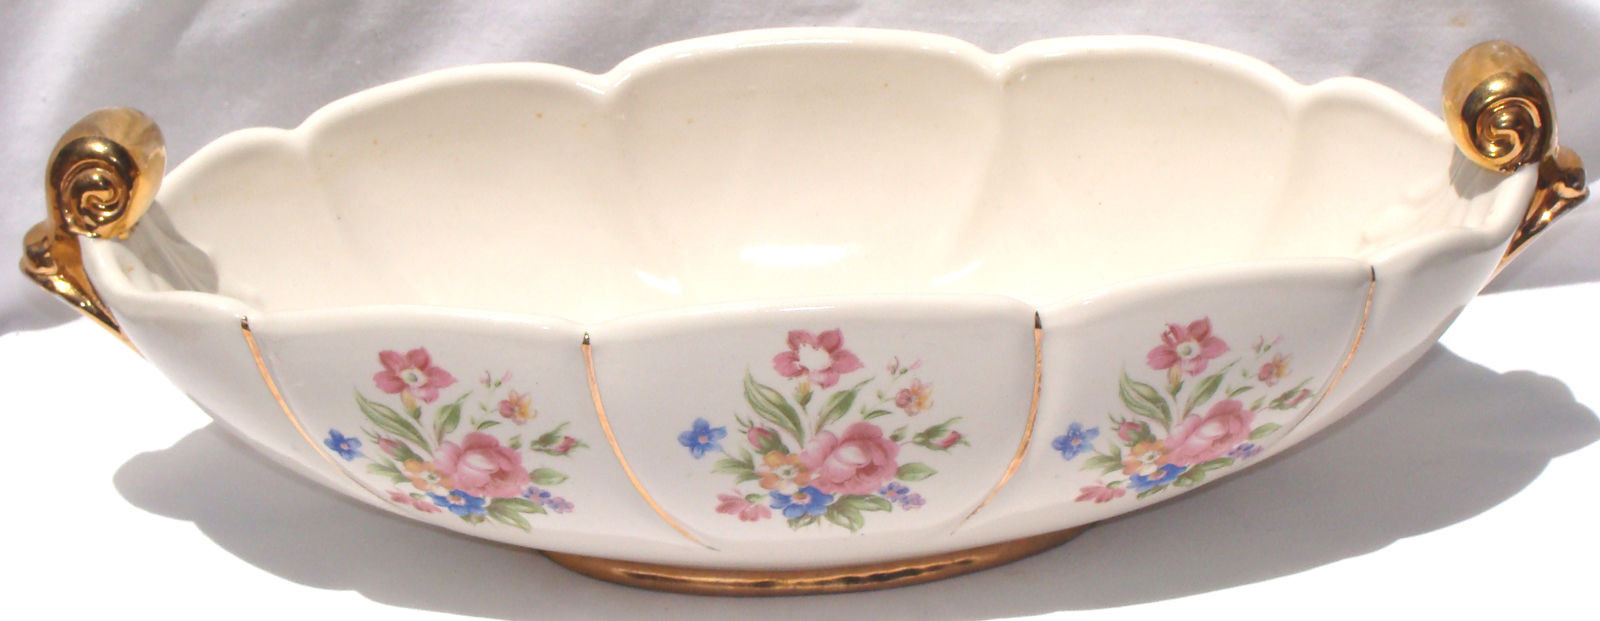 abingdon usa pottery vase of vint abingdon u s a pottery console bowl 532 cream w floral throughout abingdon u s a pottery console bowl 532 cream w floral decor gold 1940s 1 of 3only 1 available